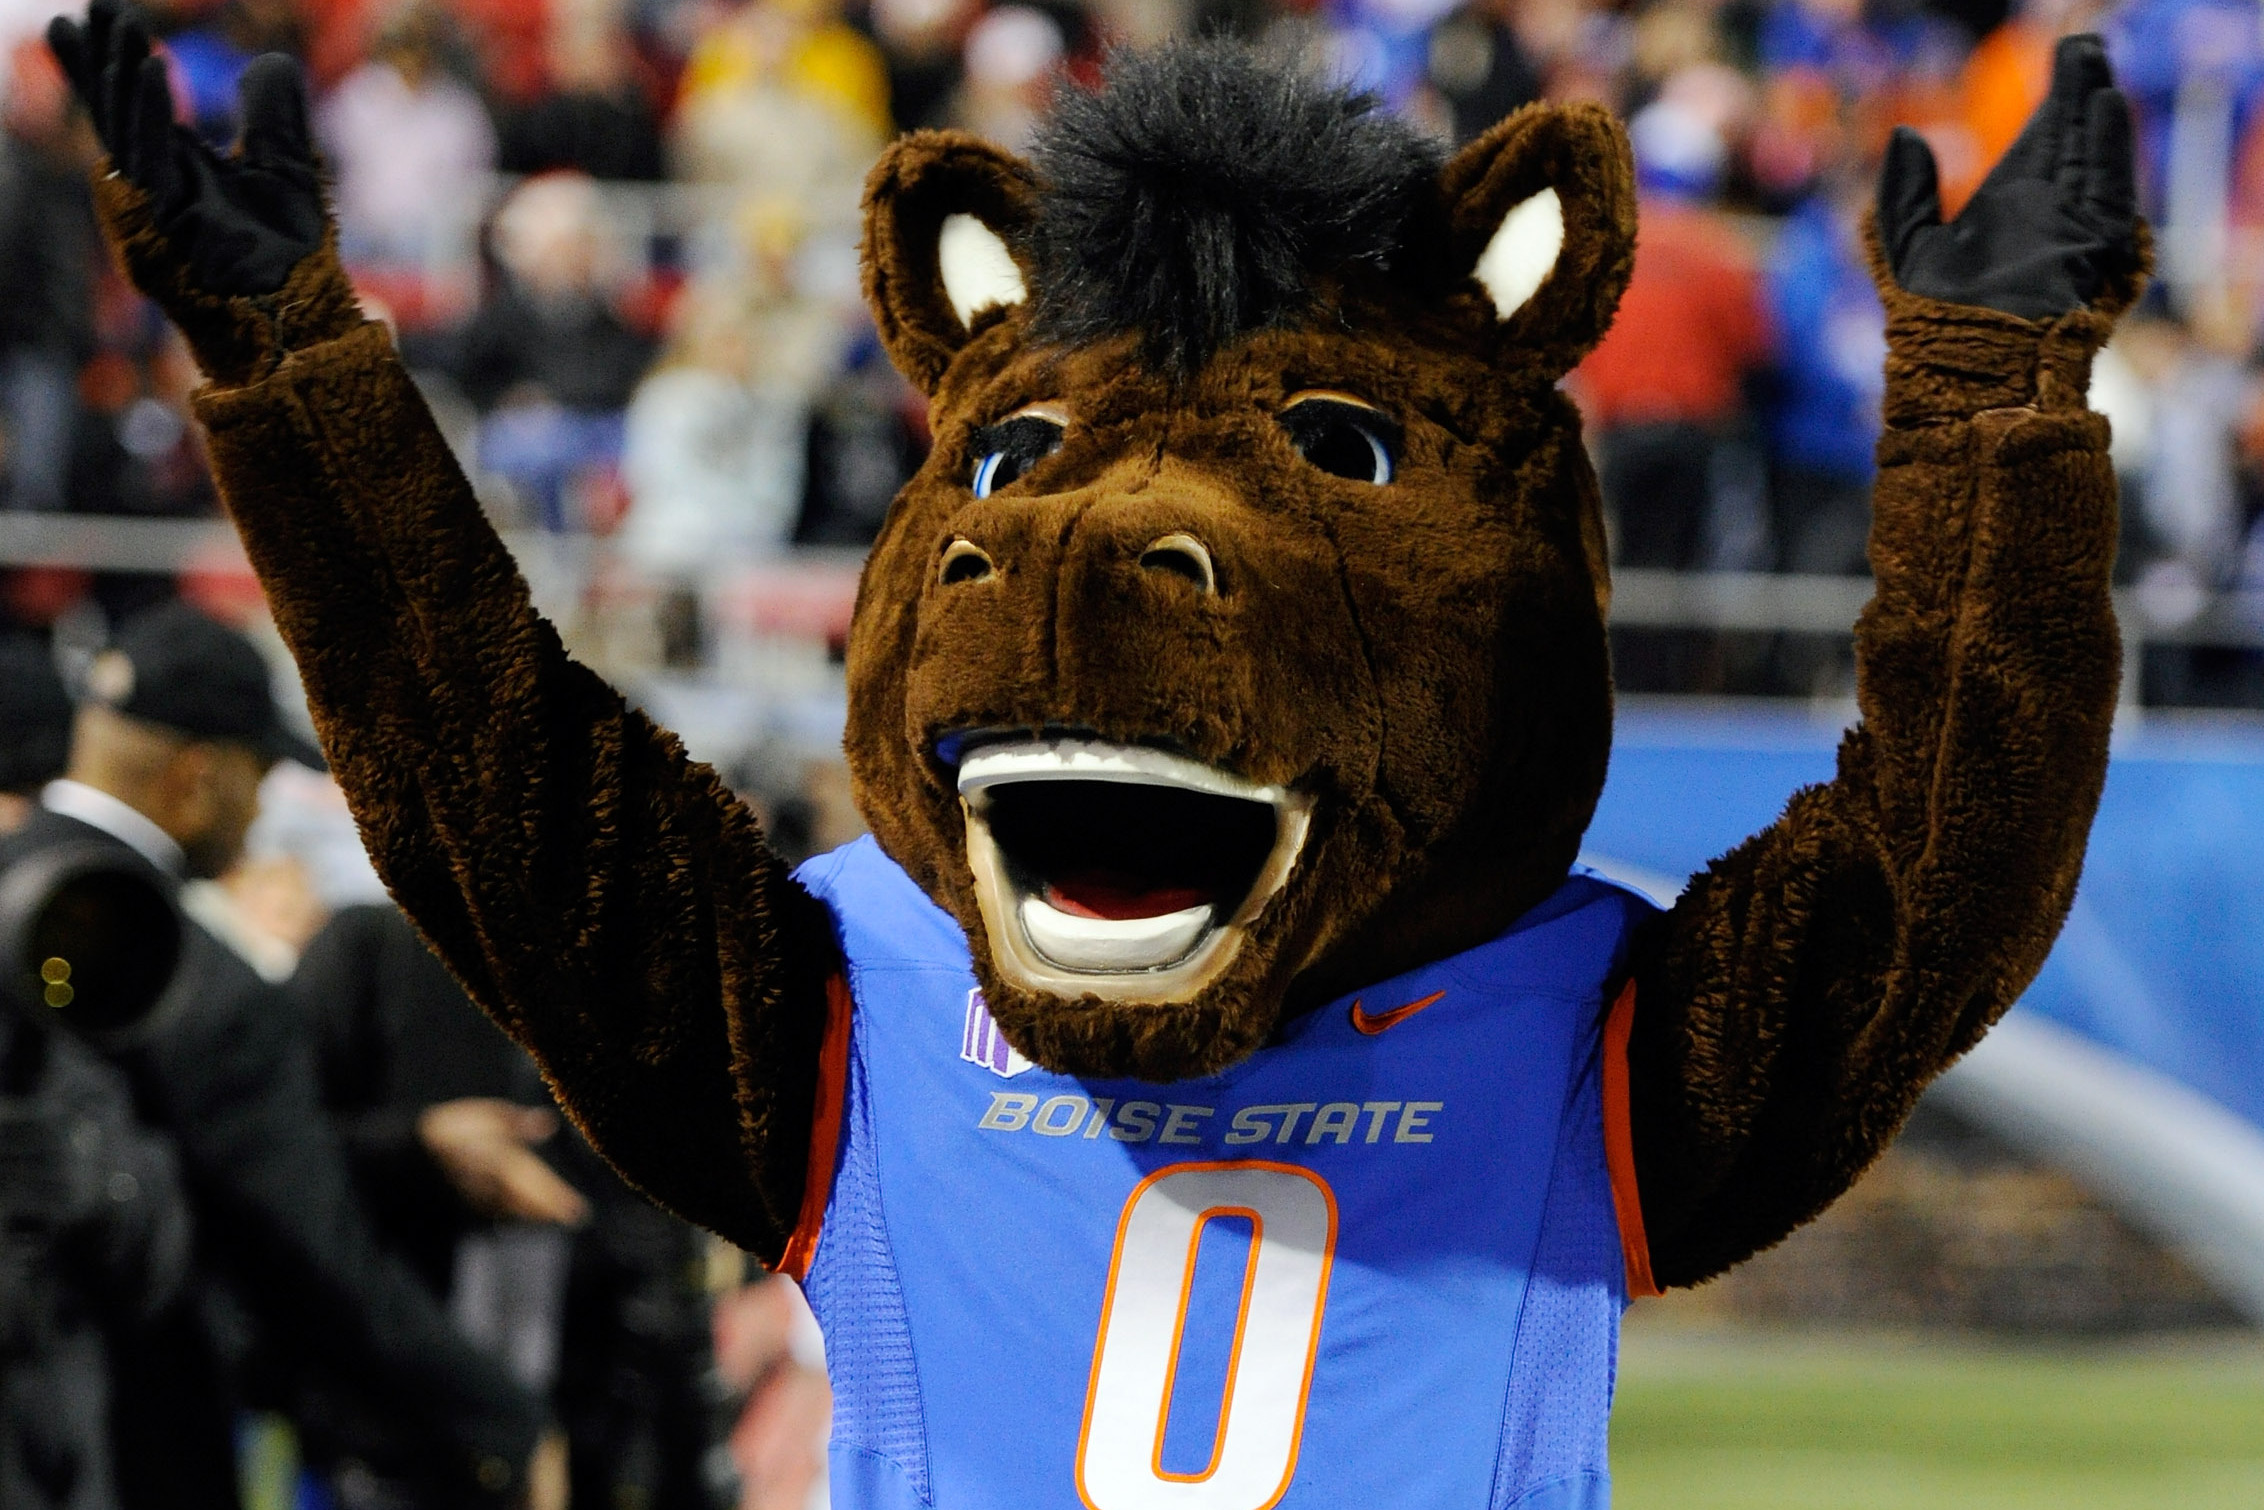 Boise State Football: Weak Schedule Dooms Broncos' BCS Title Hopes |  Bleacher Report | Latest News, Videos and Highlights